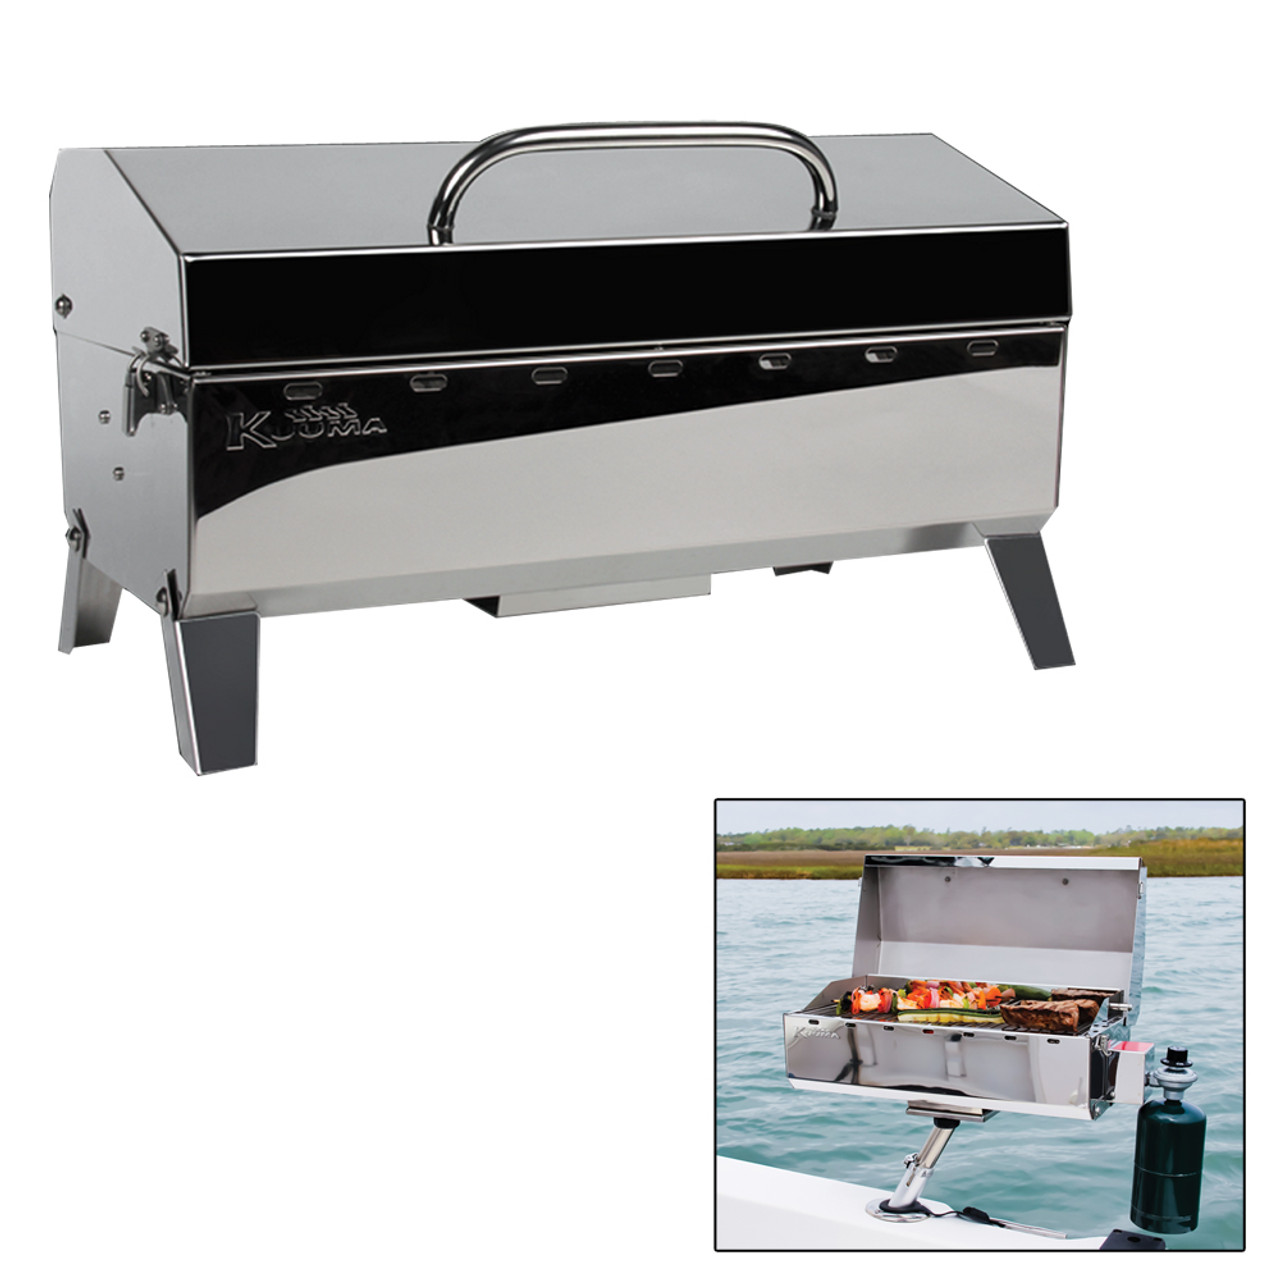 Kuuma Stow /& Go 160 Gas Grill 13000 Btu W// Regulator #58130